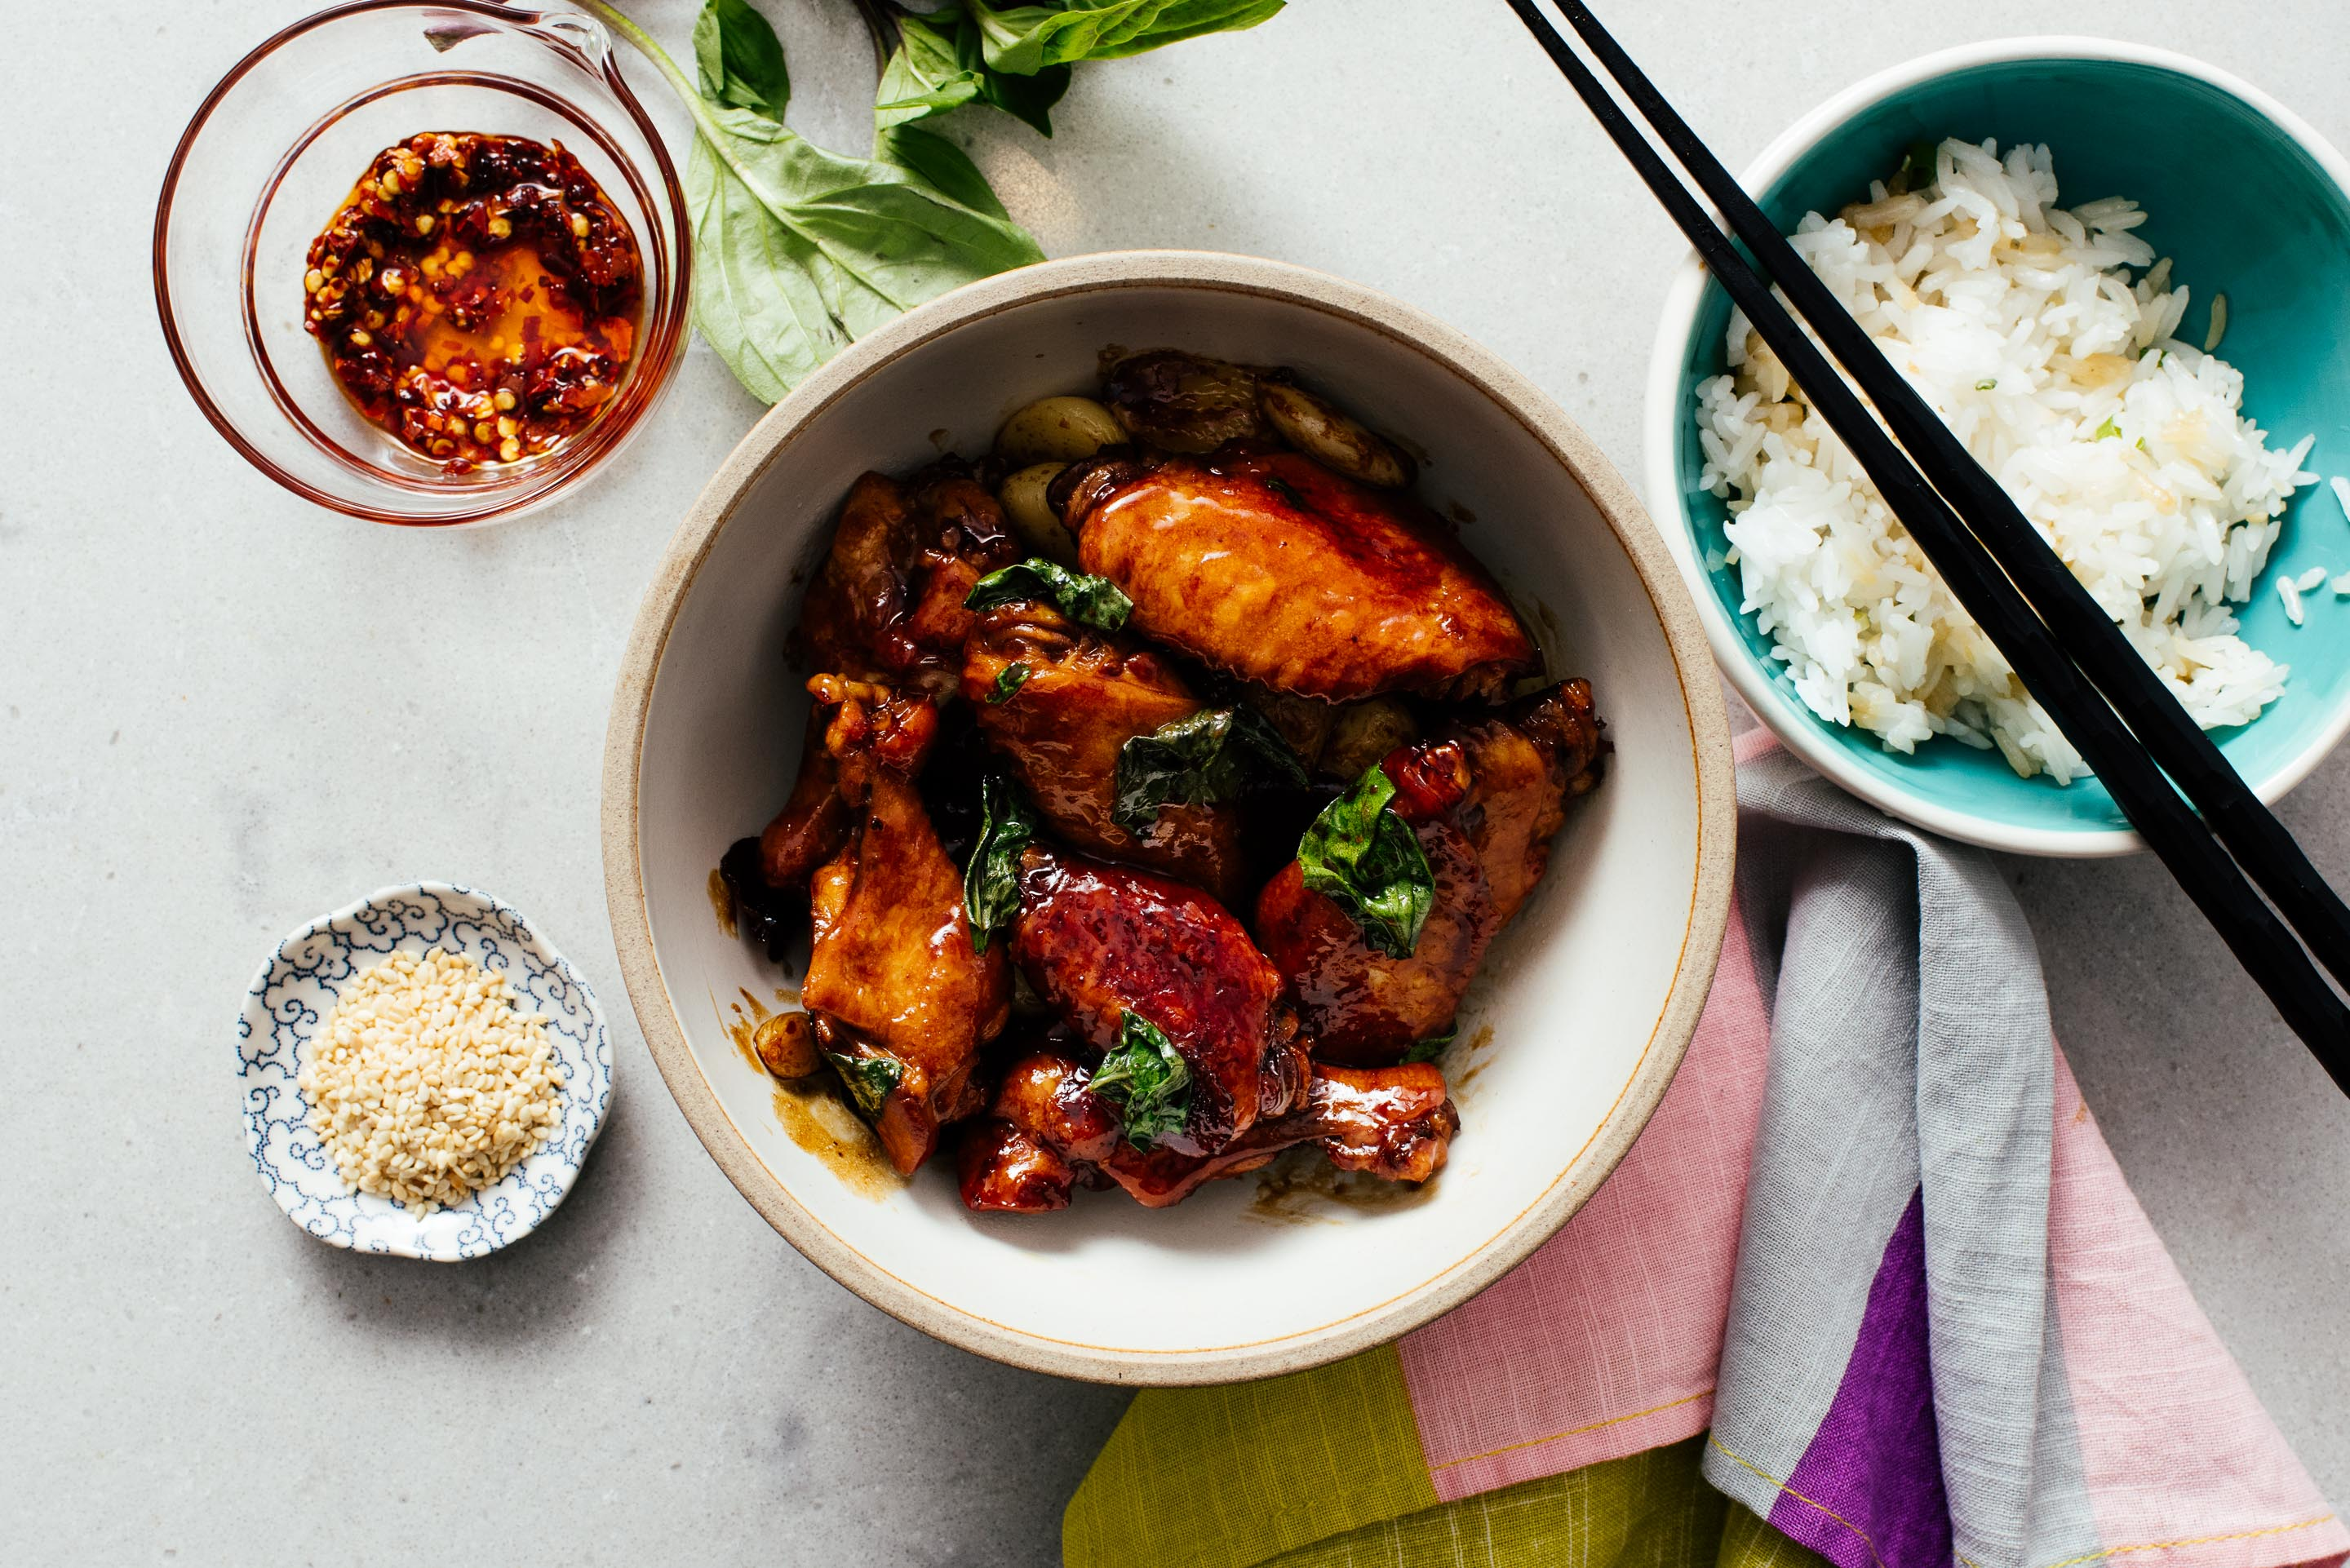 San Bei Ji: 15 Minute Easy Taiwanese 3 Cup Chicken Recipe